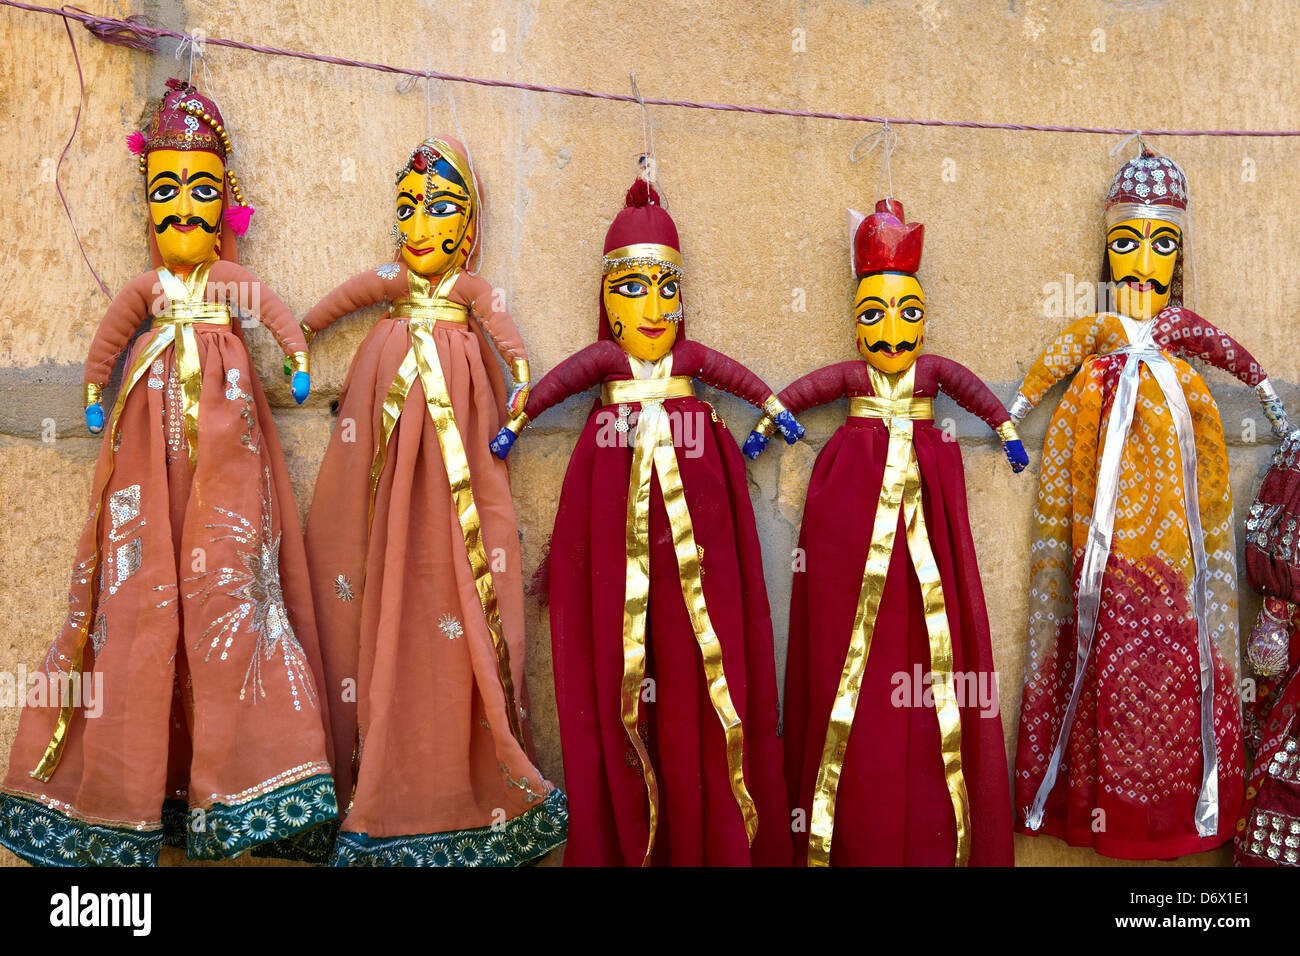 Popular indian souvenirs - traditional puppets dolls from northern Rajasthan, Jaisalmer, India - Stock Image